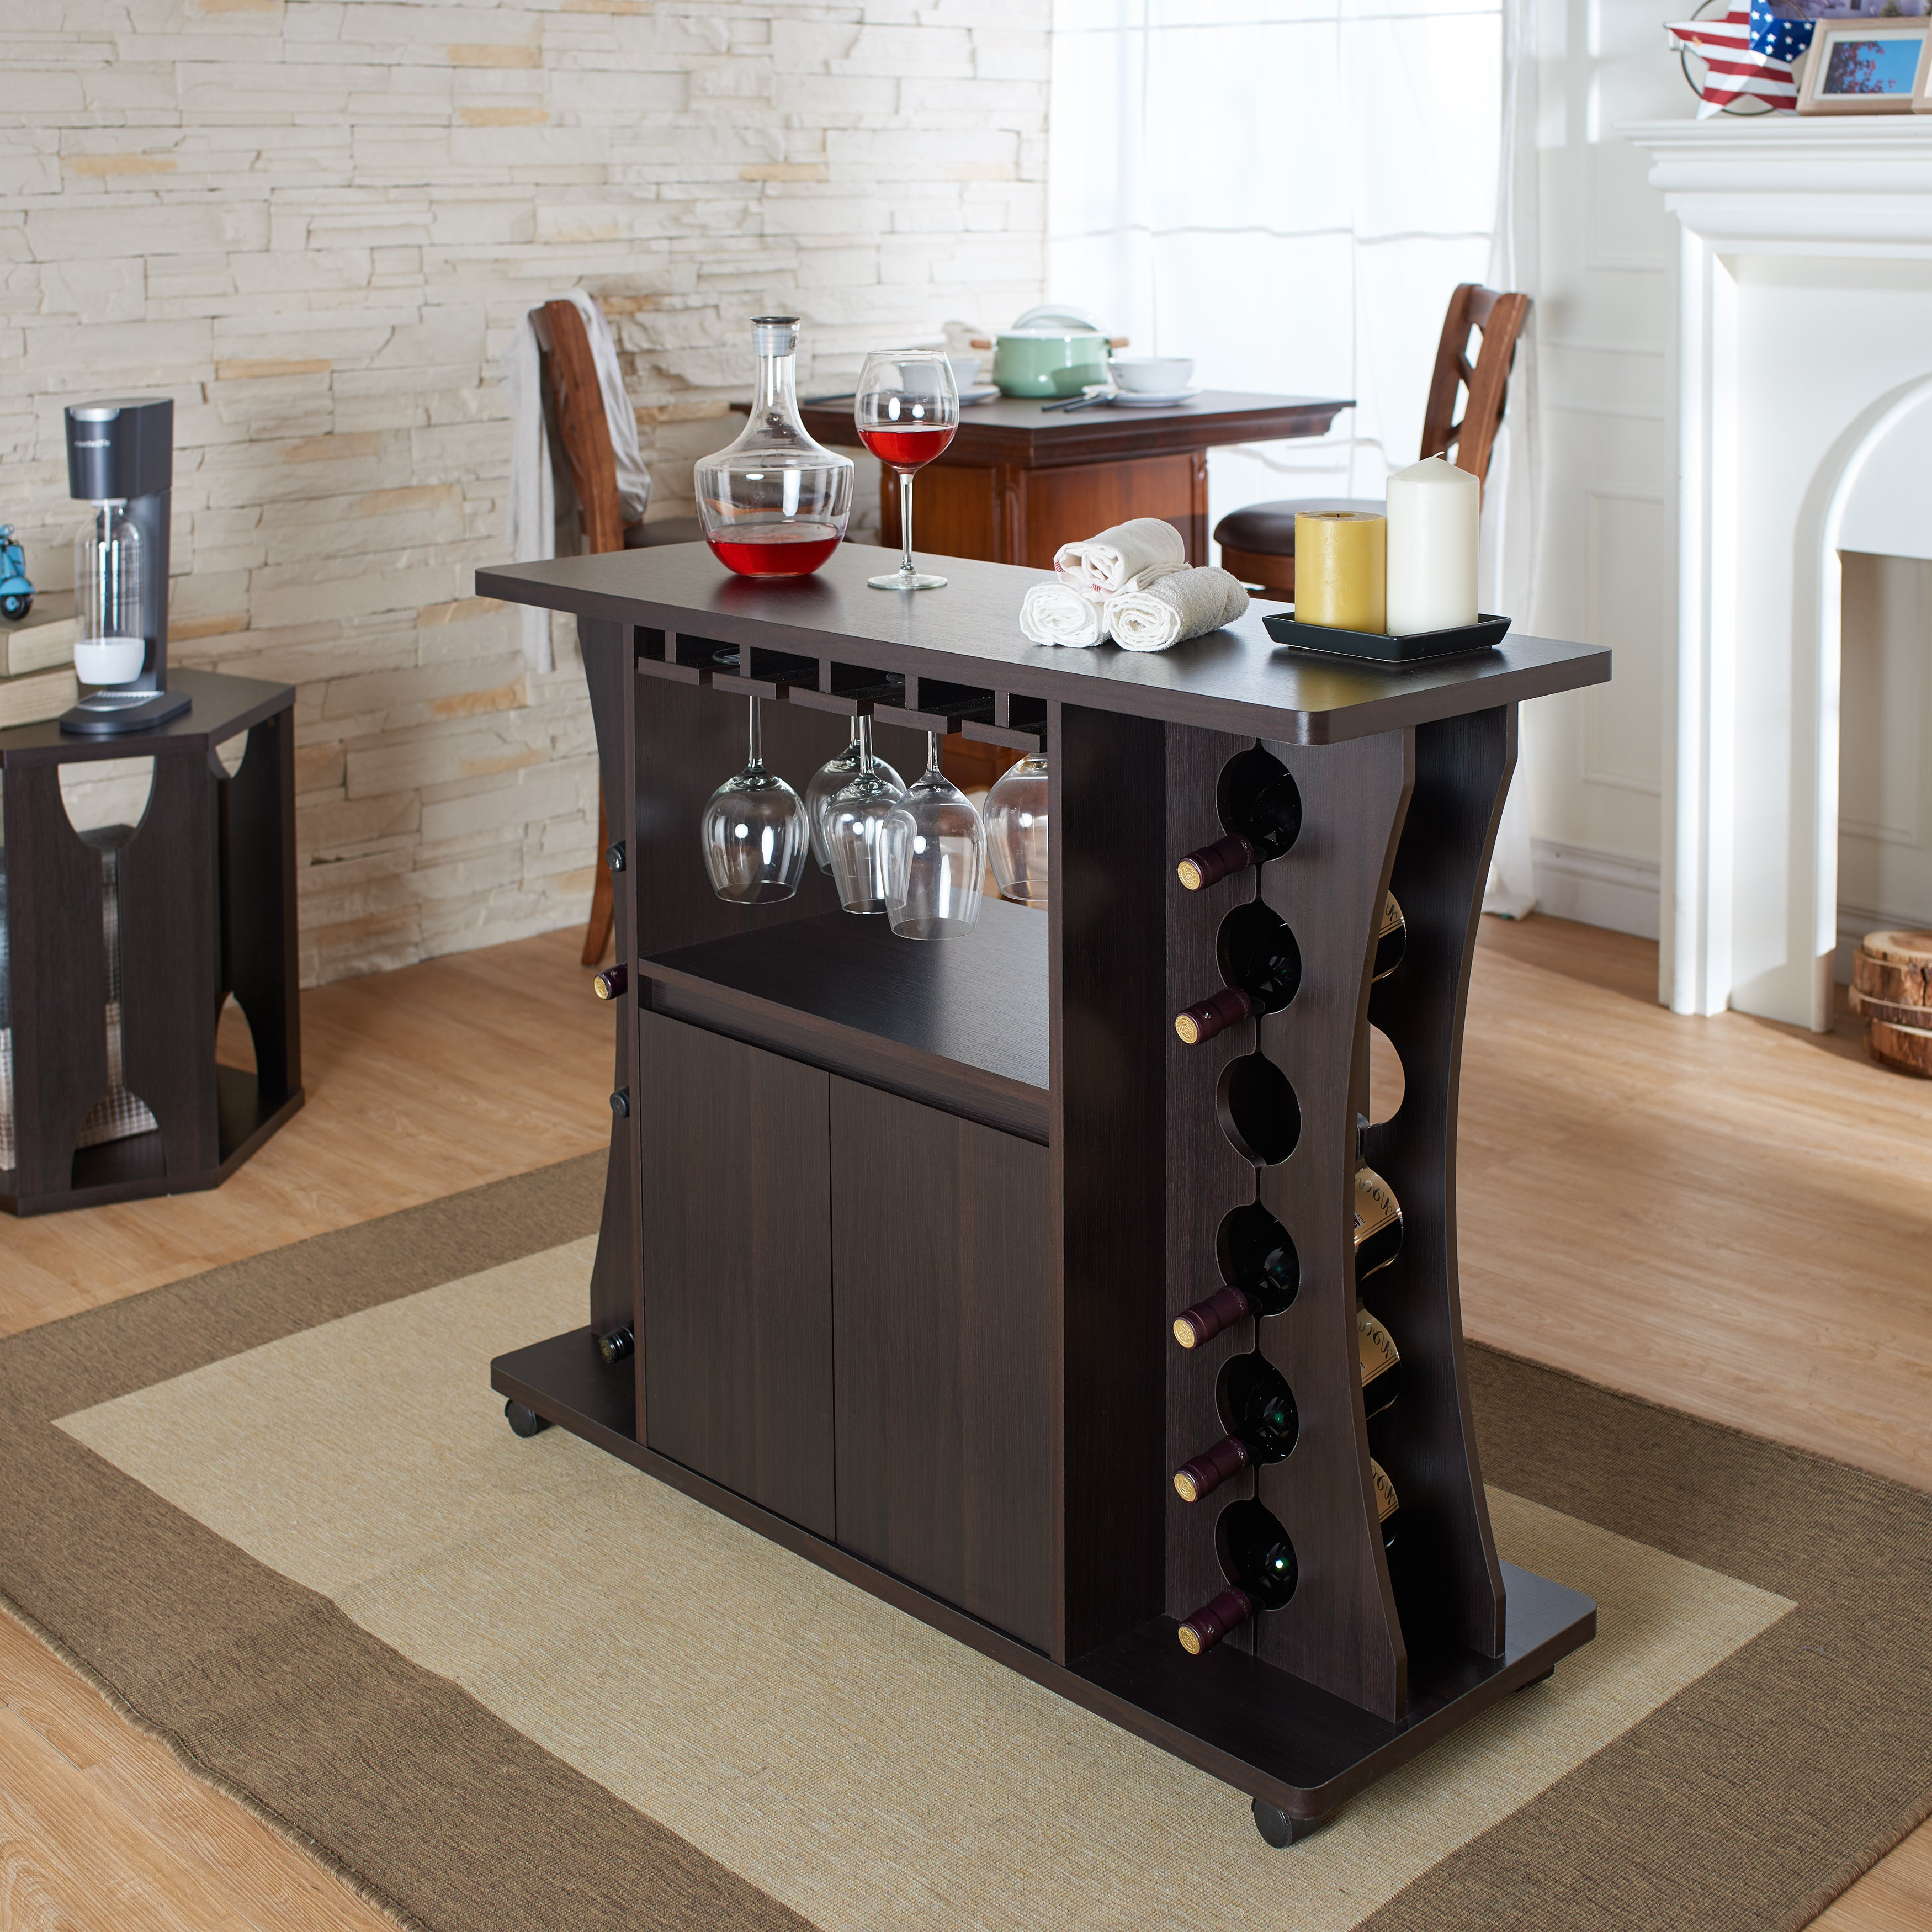 Details About Wine Bar Set 35.9X43.31X (View 7 of 20)